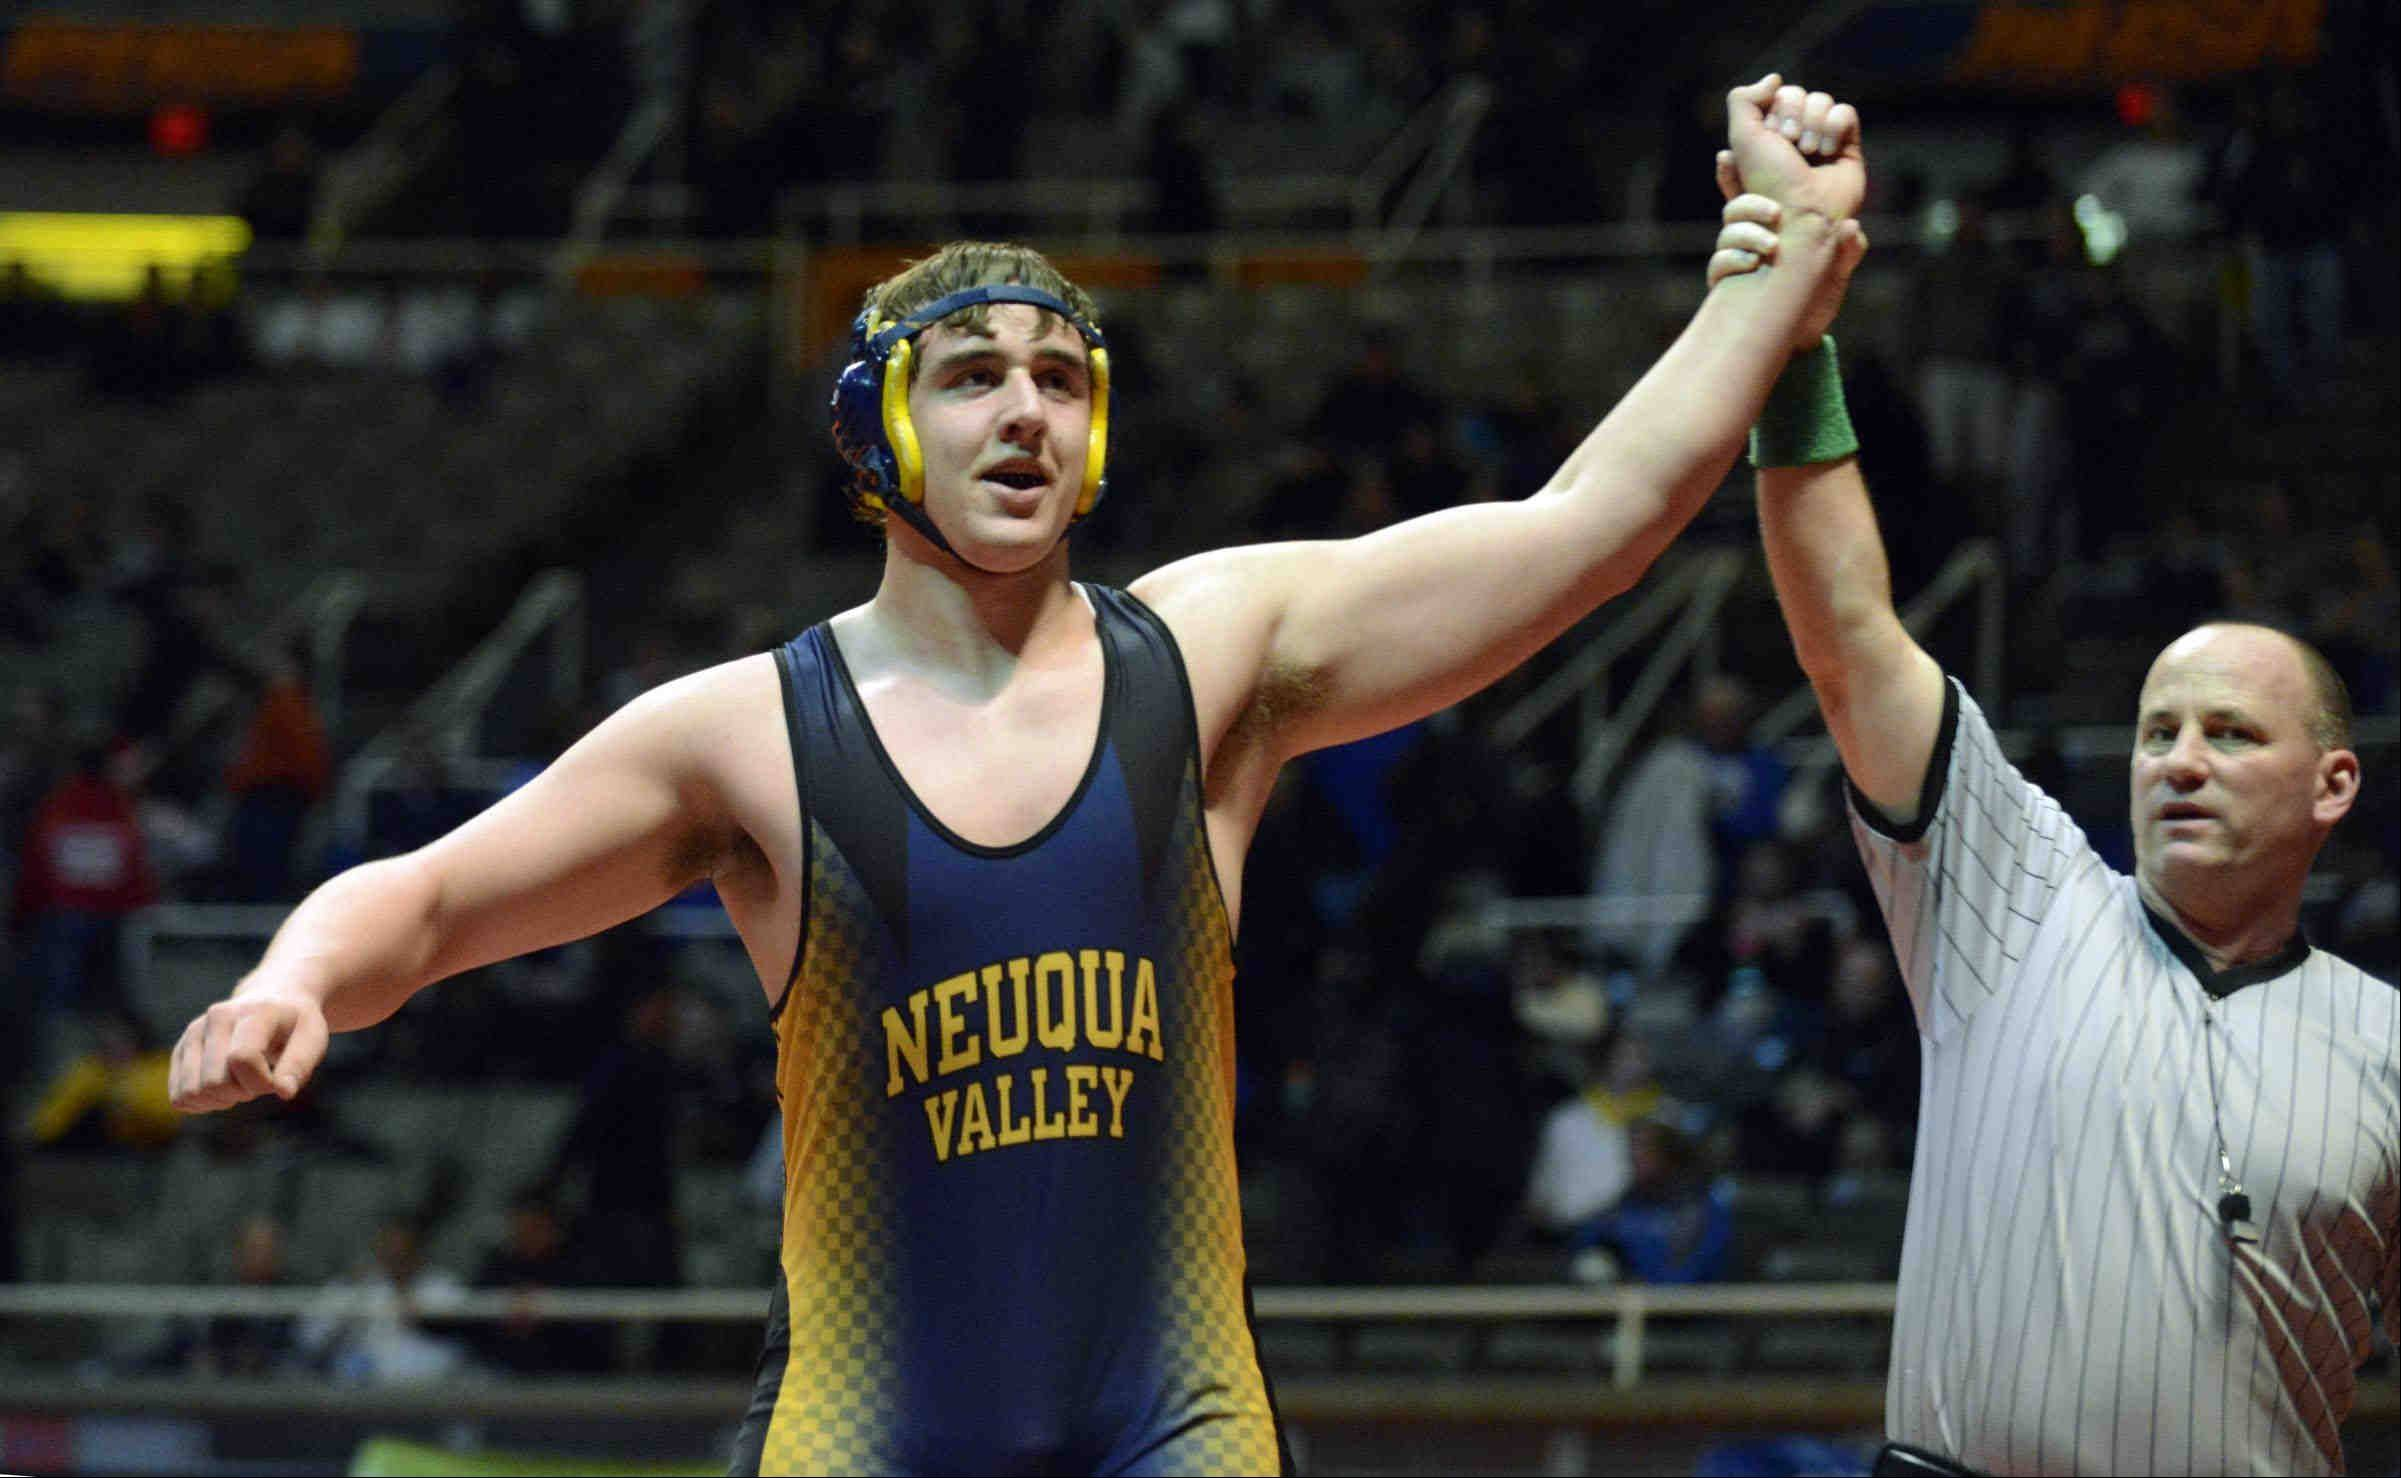 John Starks/jstarks@dailyherald.com ¬ Neuqua Valley's Andrew Geers is declared the winner of the 285 pound Class 3A match over Alex Fritz of Marmion Academy Friday in the IHSA semifinal wrestling match at Assembly Hall in Champaign.